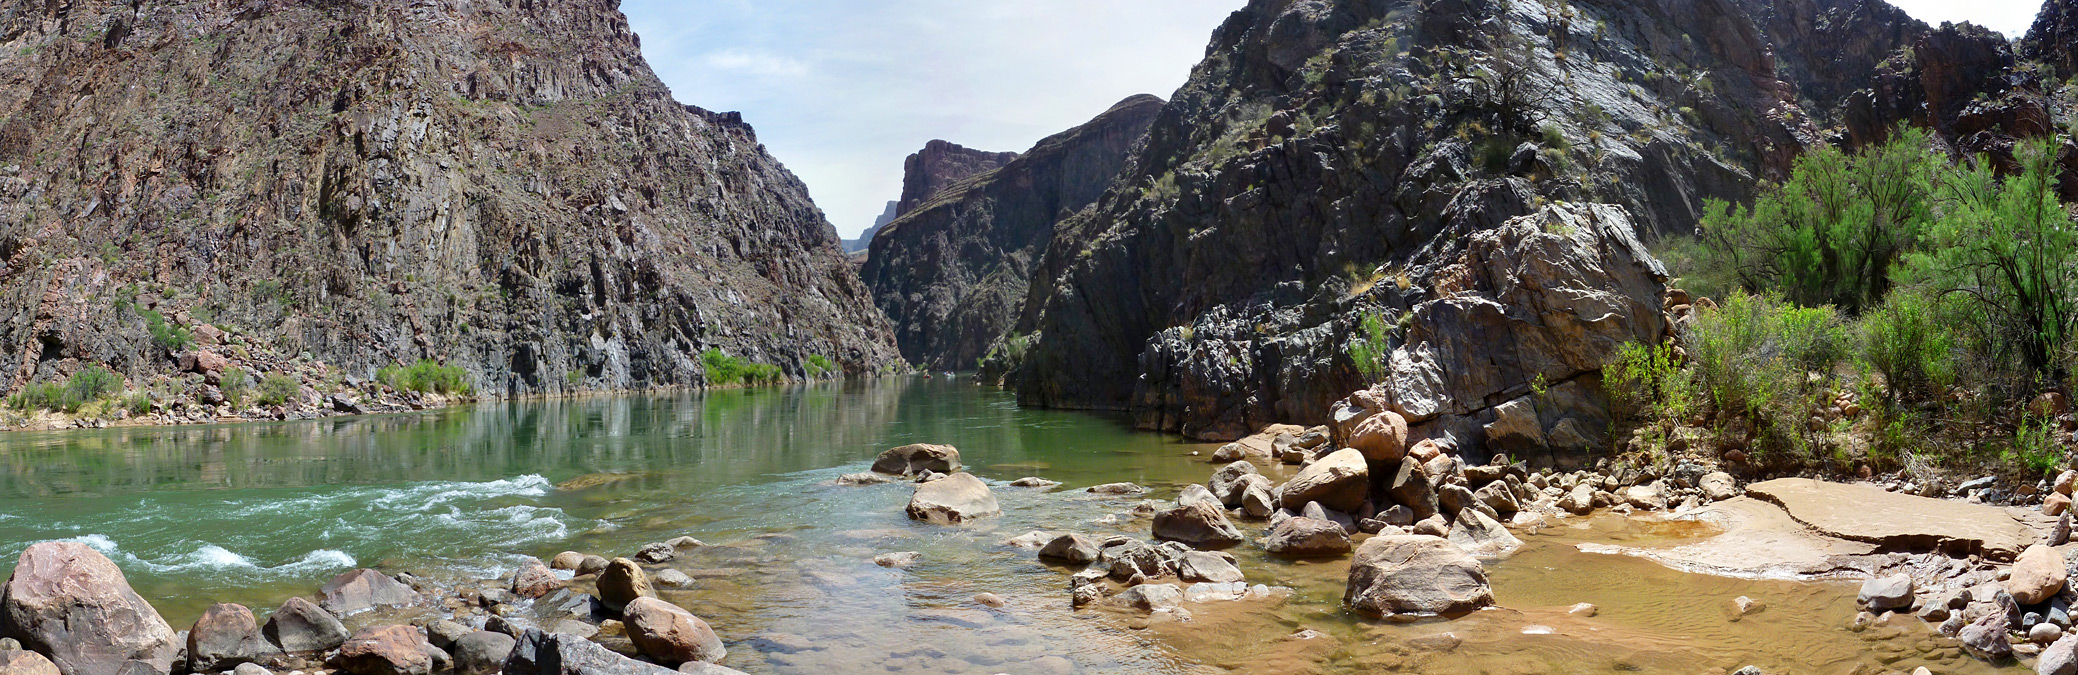 Colorado River - upstream